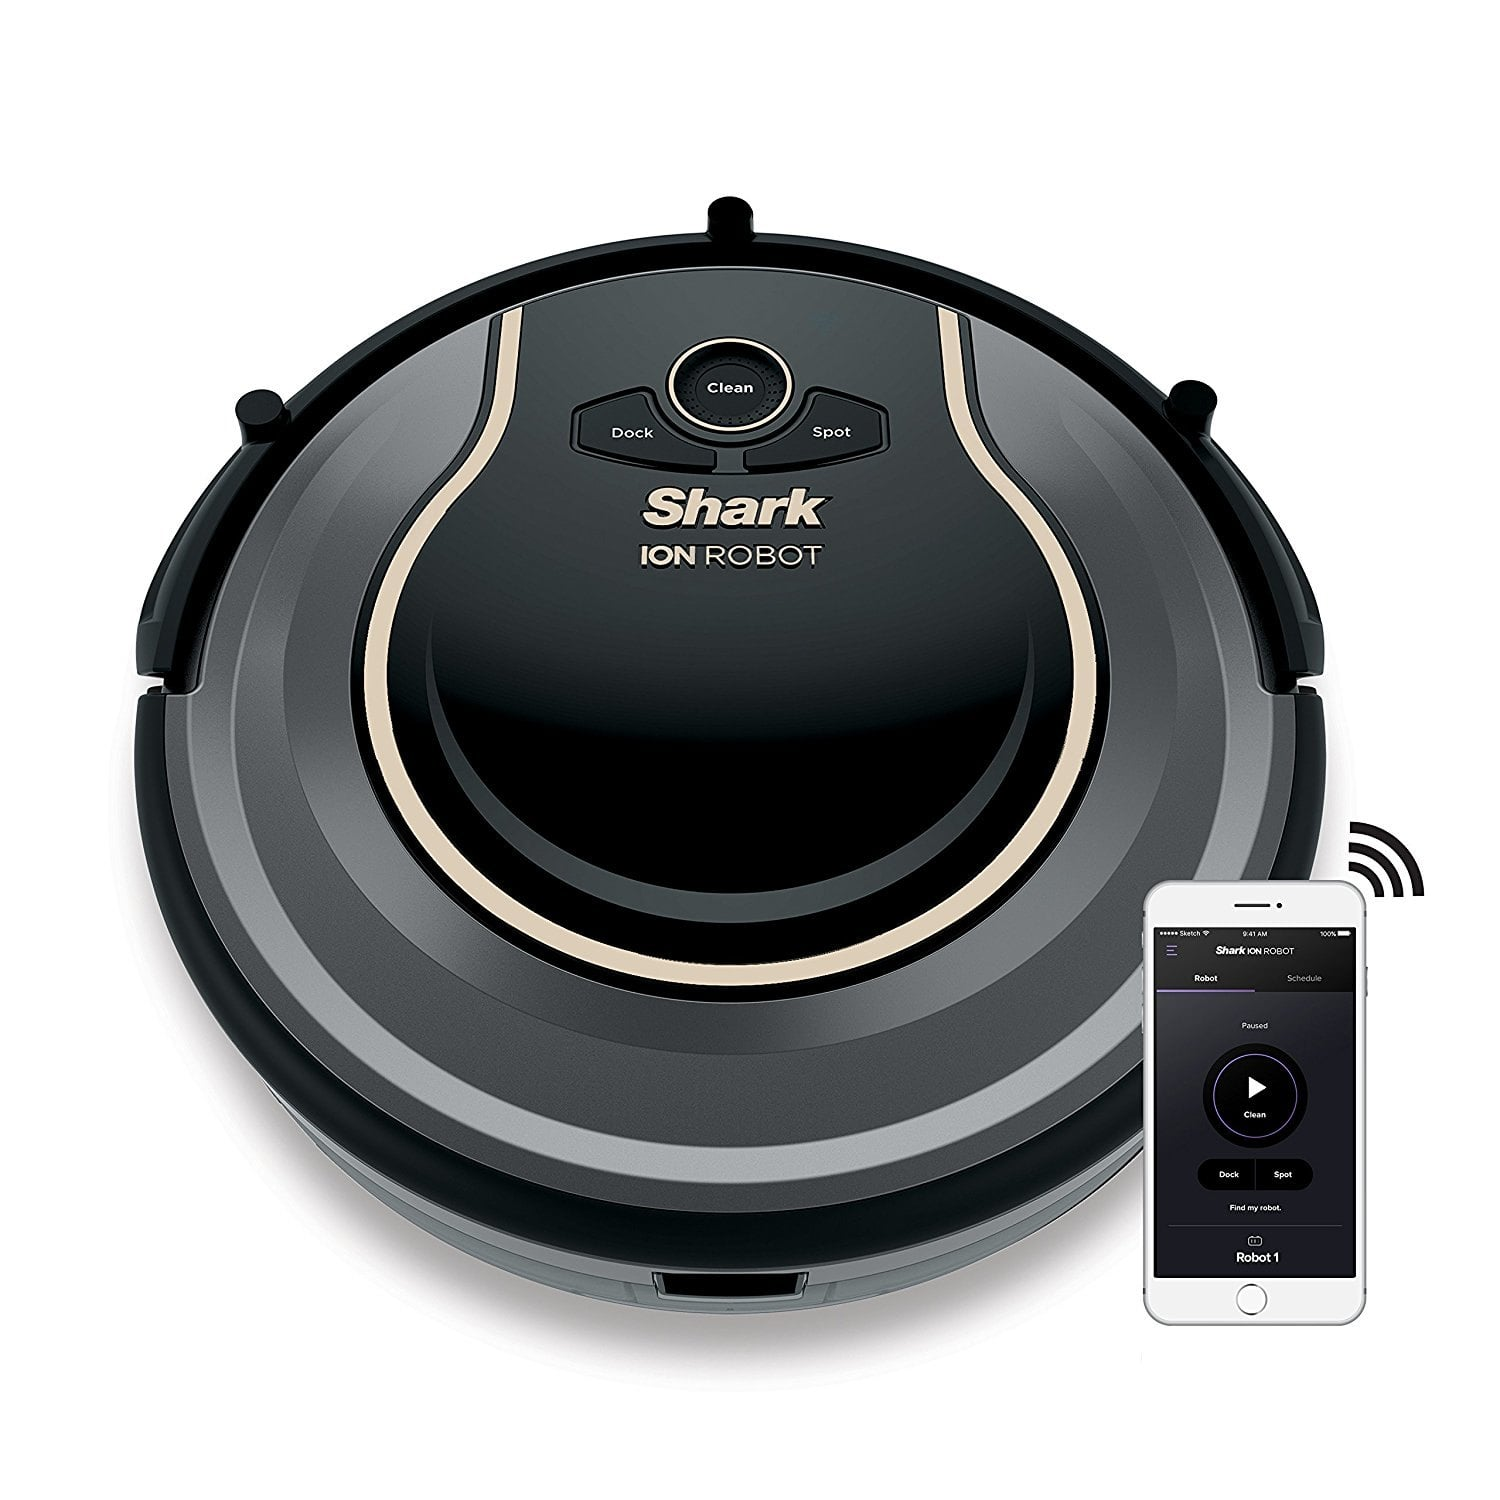 Shark ION ROBOT 750 Vacuum with Wi-Fi Connectivity + Voice Control, Works with Alexa RV750 for $259.20 AC Shipped